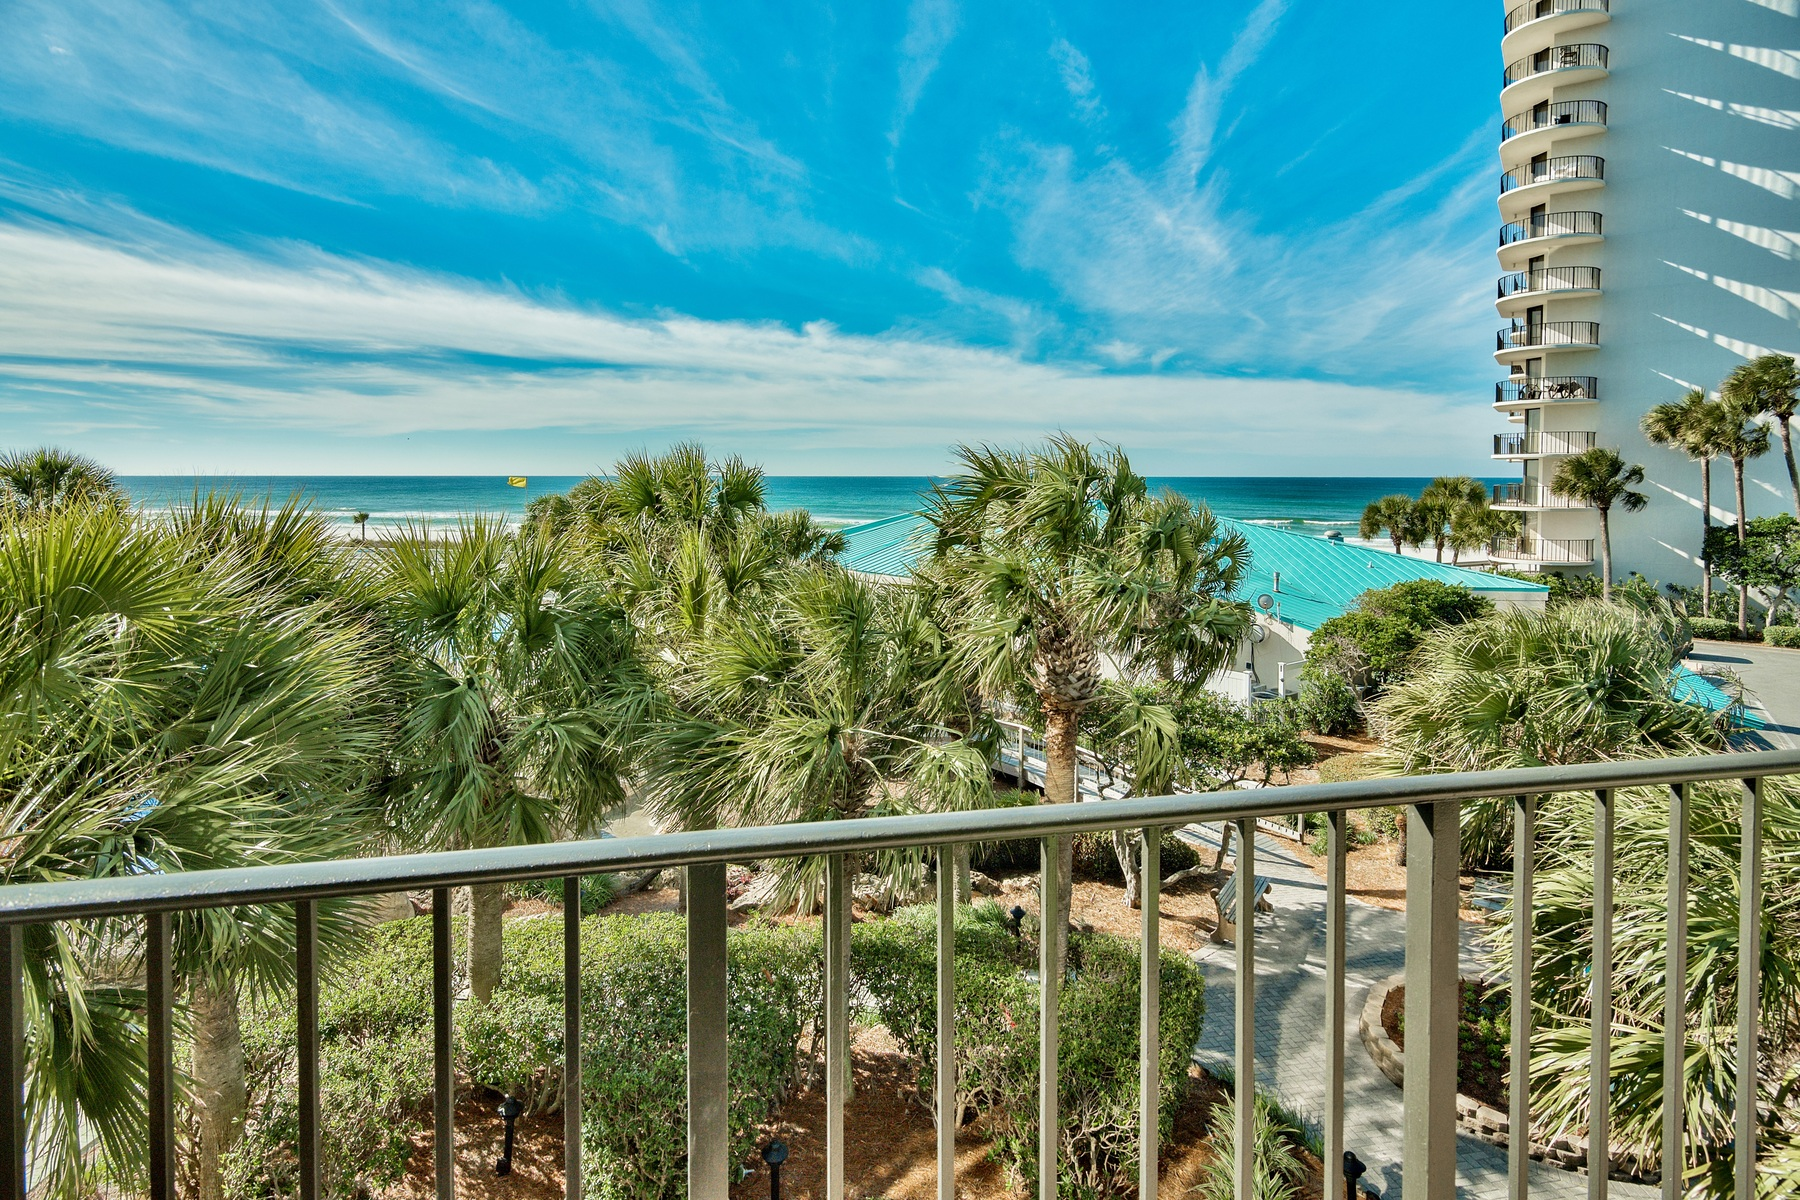 Condominio por un Venta en UNIQUE WRAP AROUND BALCONY AND UNOBSTRUCTED GULF VIEWS 11483 Front Beach Road 212 Panama City Beach, Florida, 32407 Estados Unidos